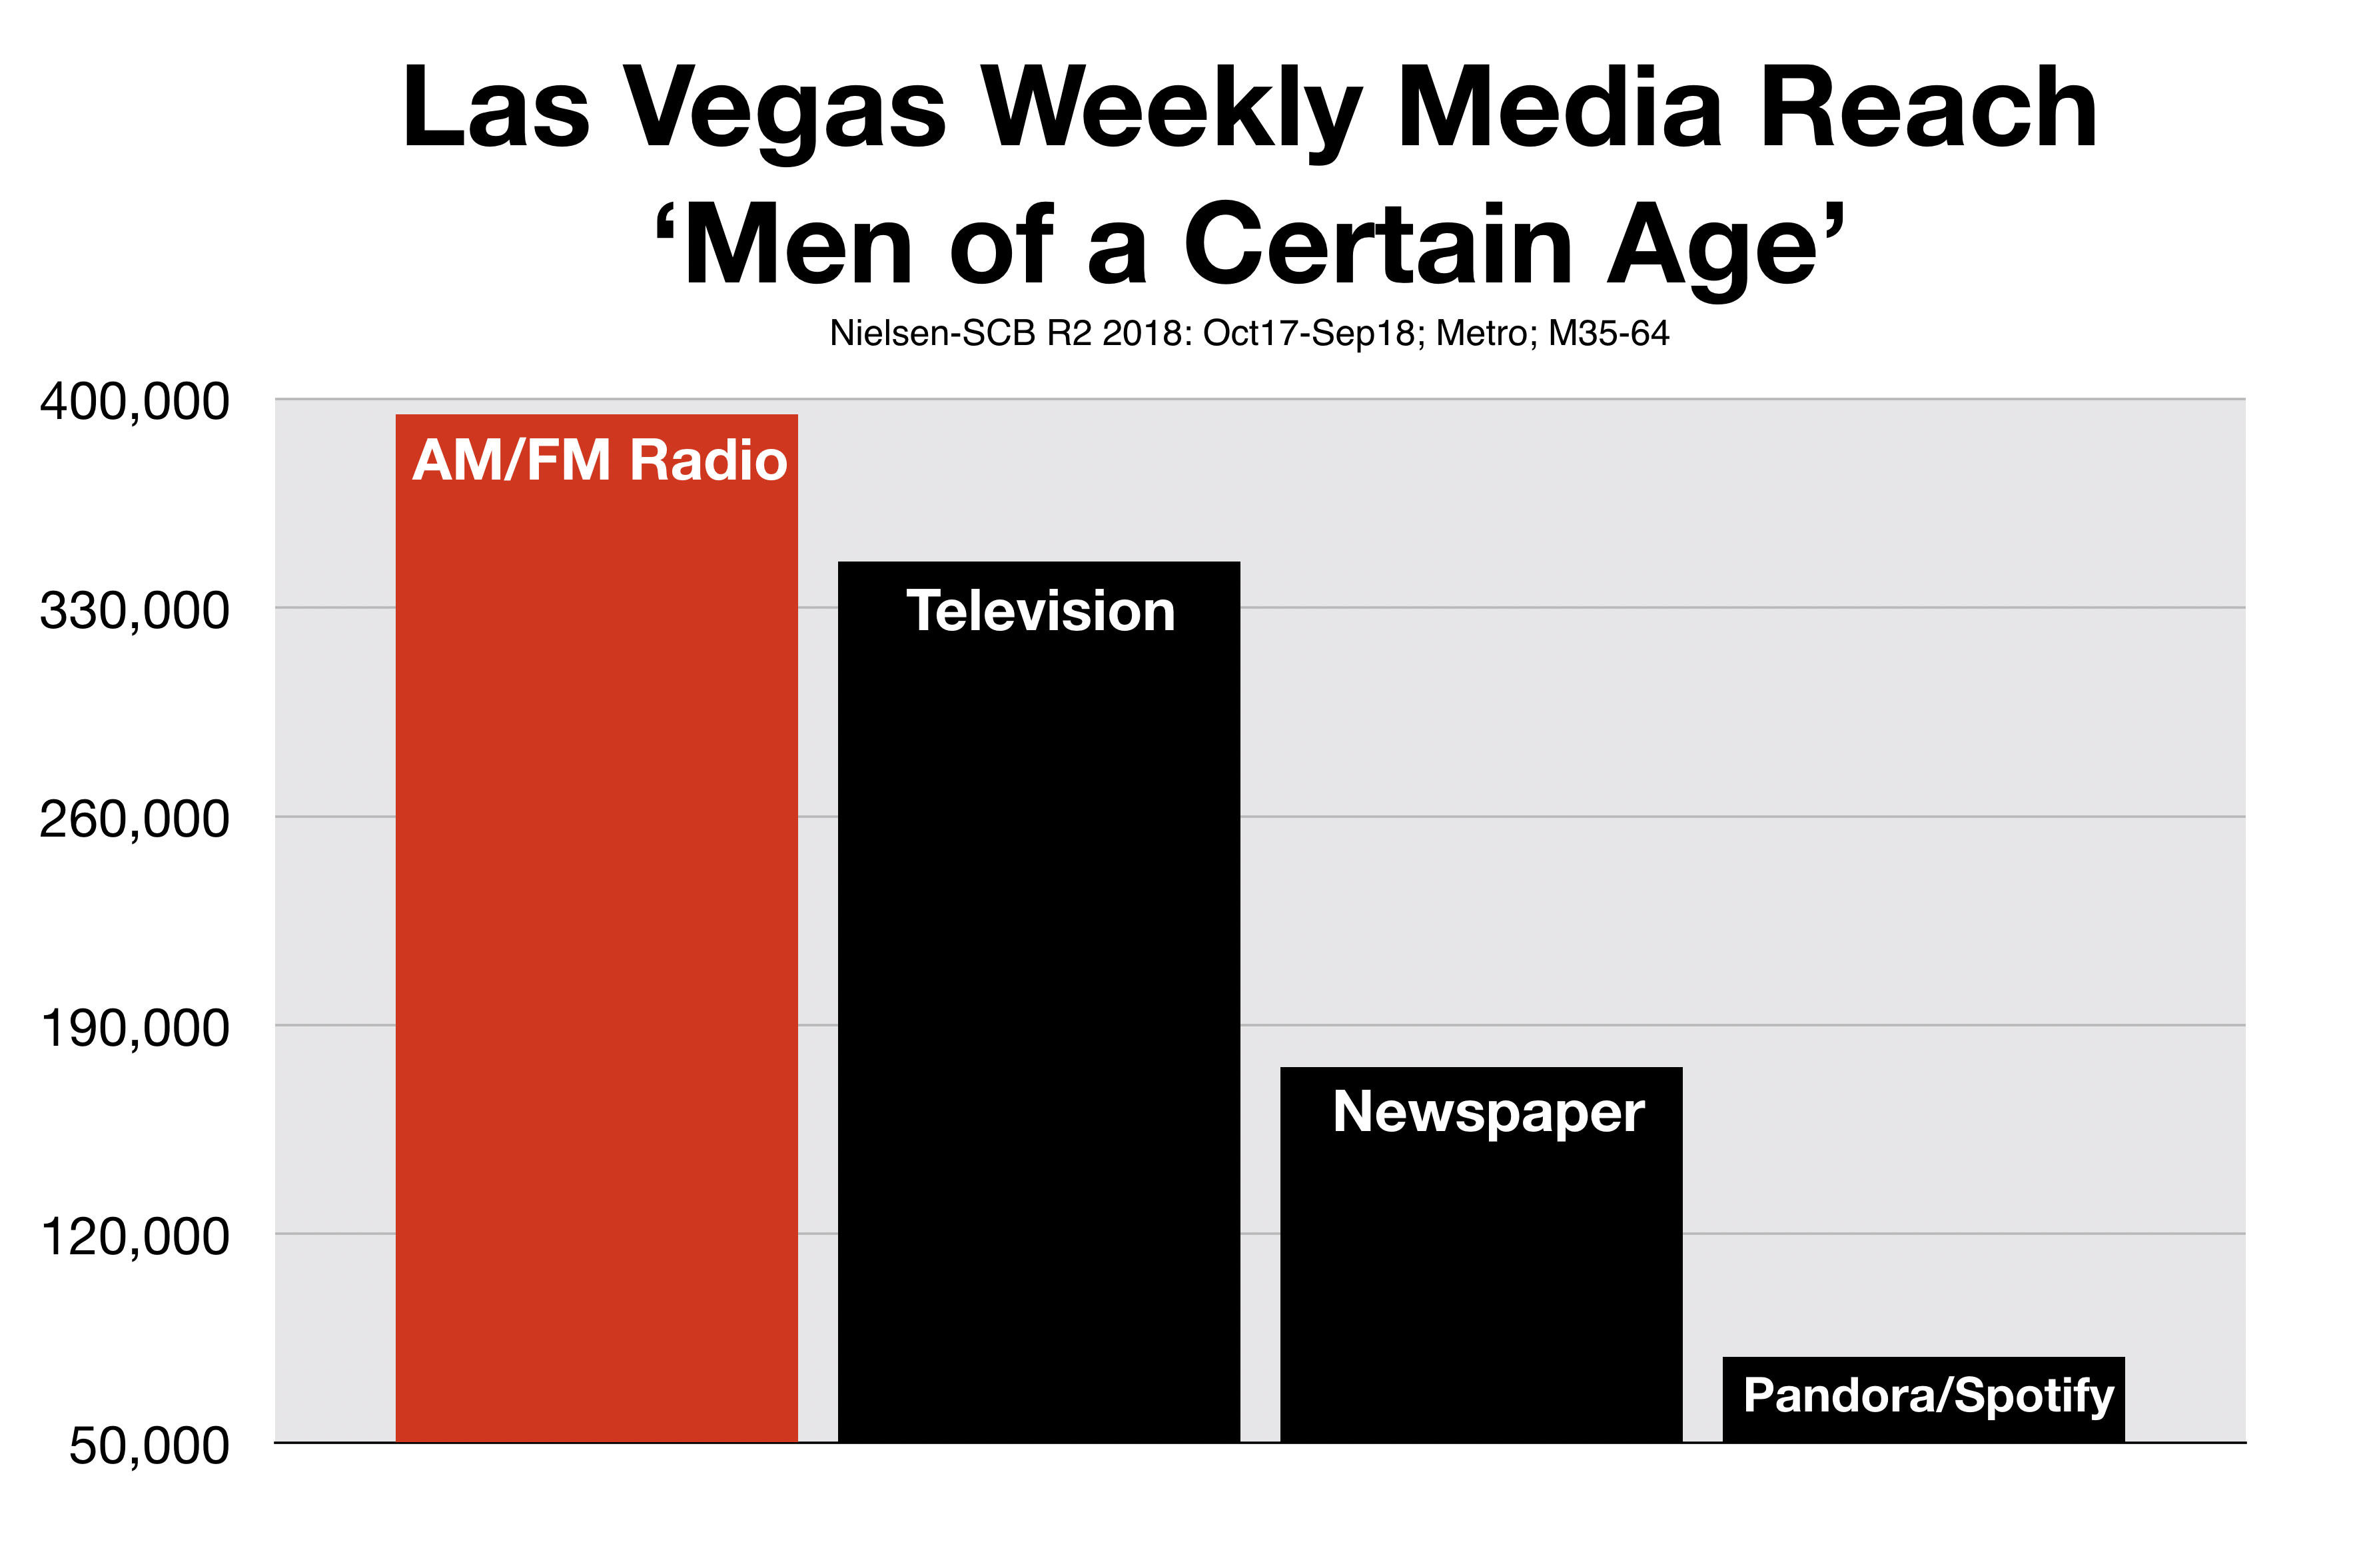 Advertising on Las Vegas Radio Reaches Men of A Certain Age